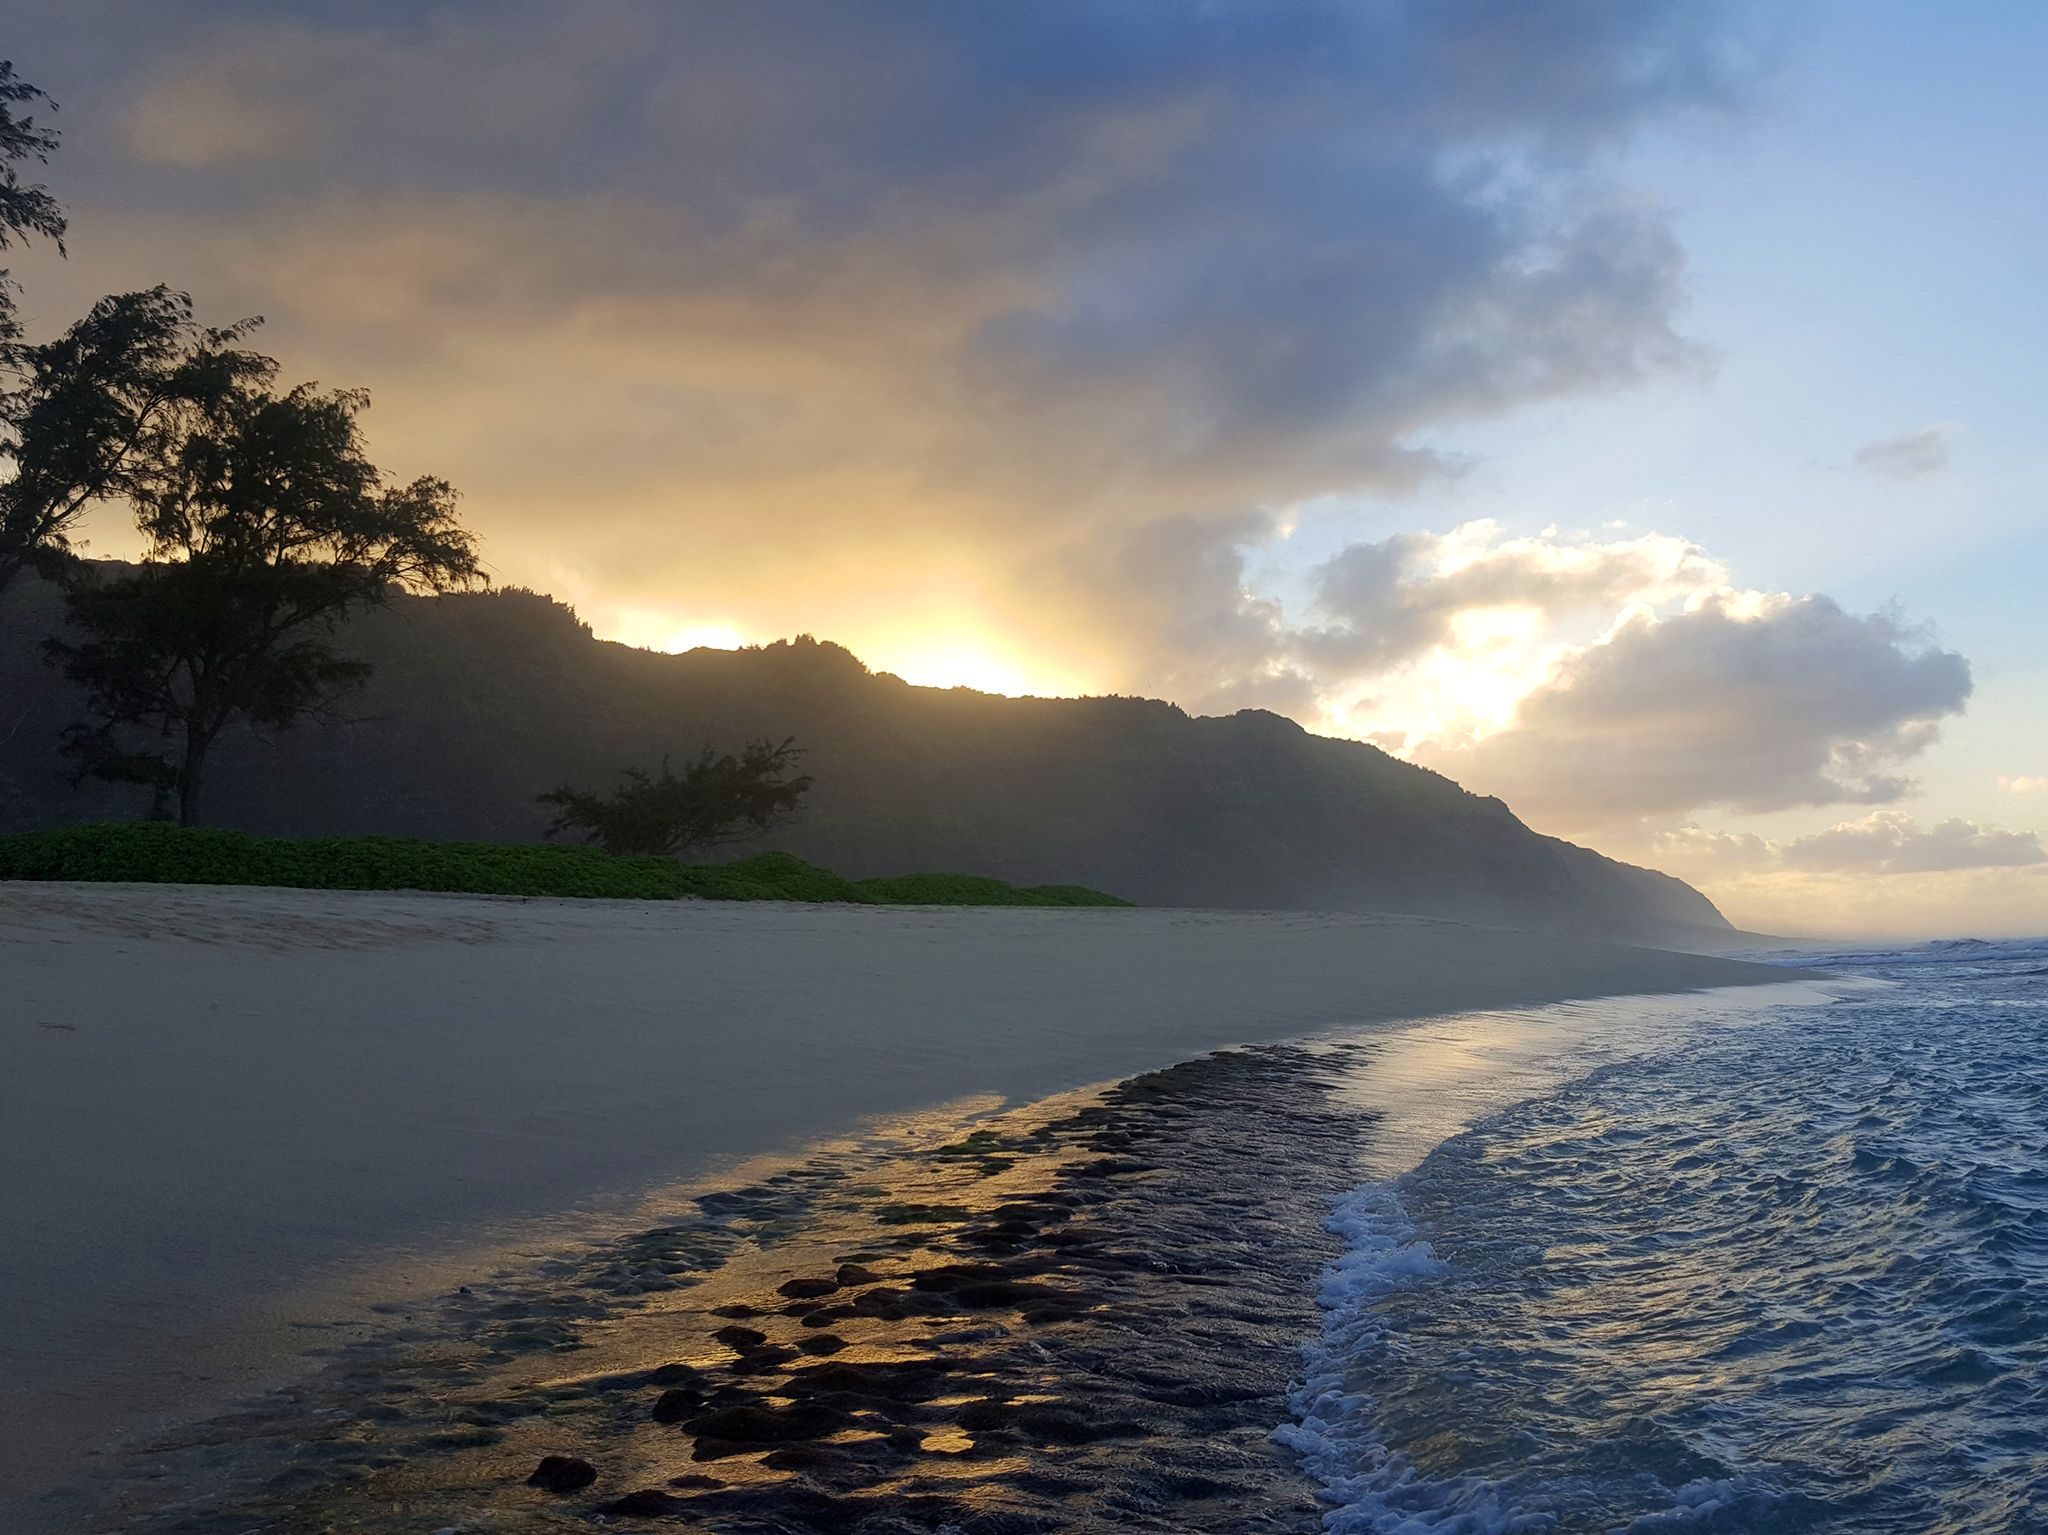 Hawaii North Shore approaching sunset.  This image is from Drain the Oceans. [Photo of the day - May 2019]